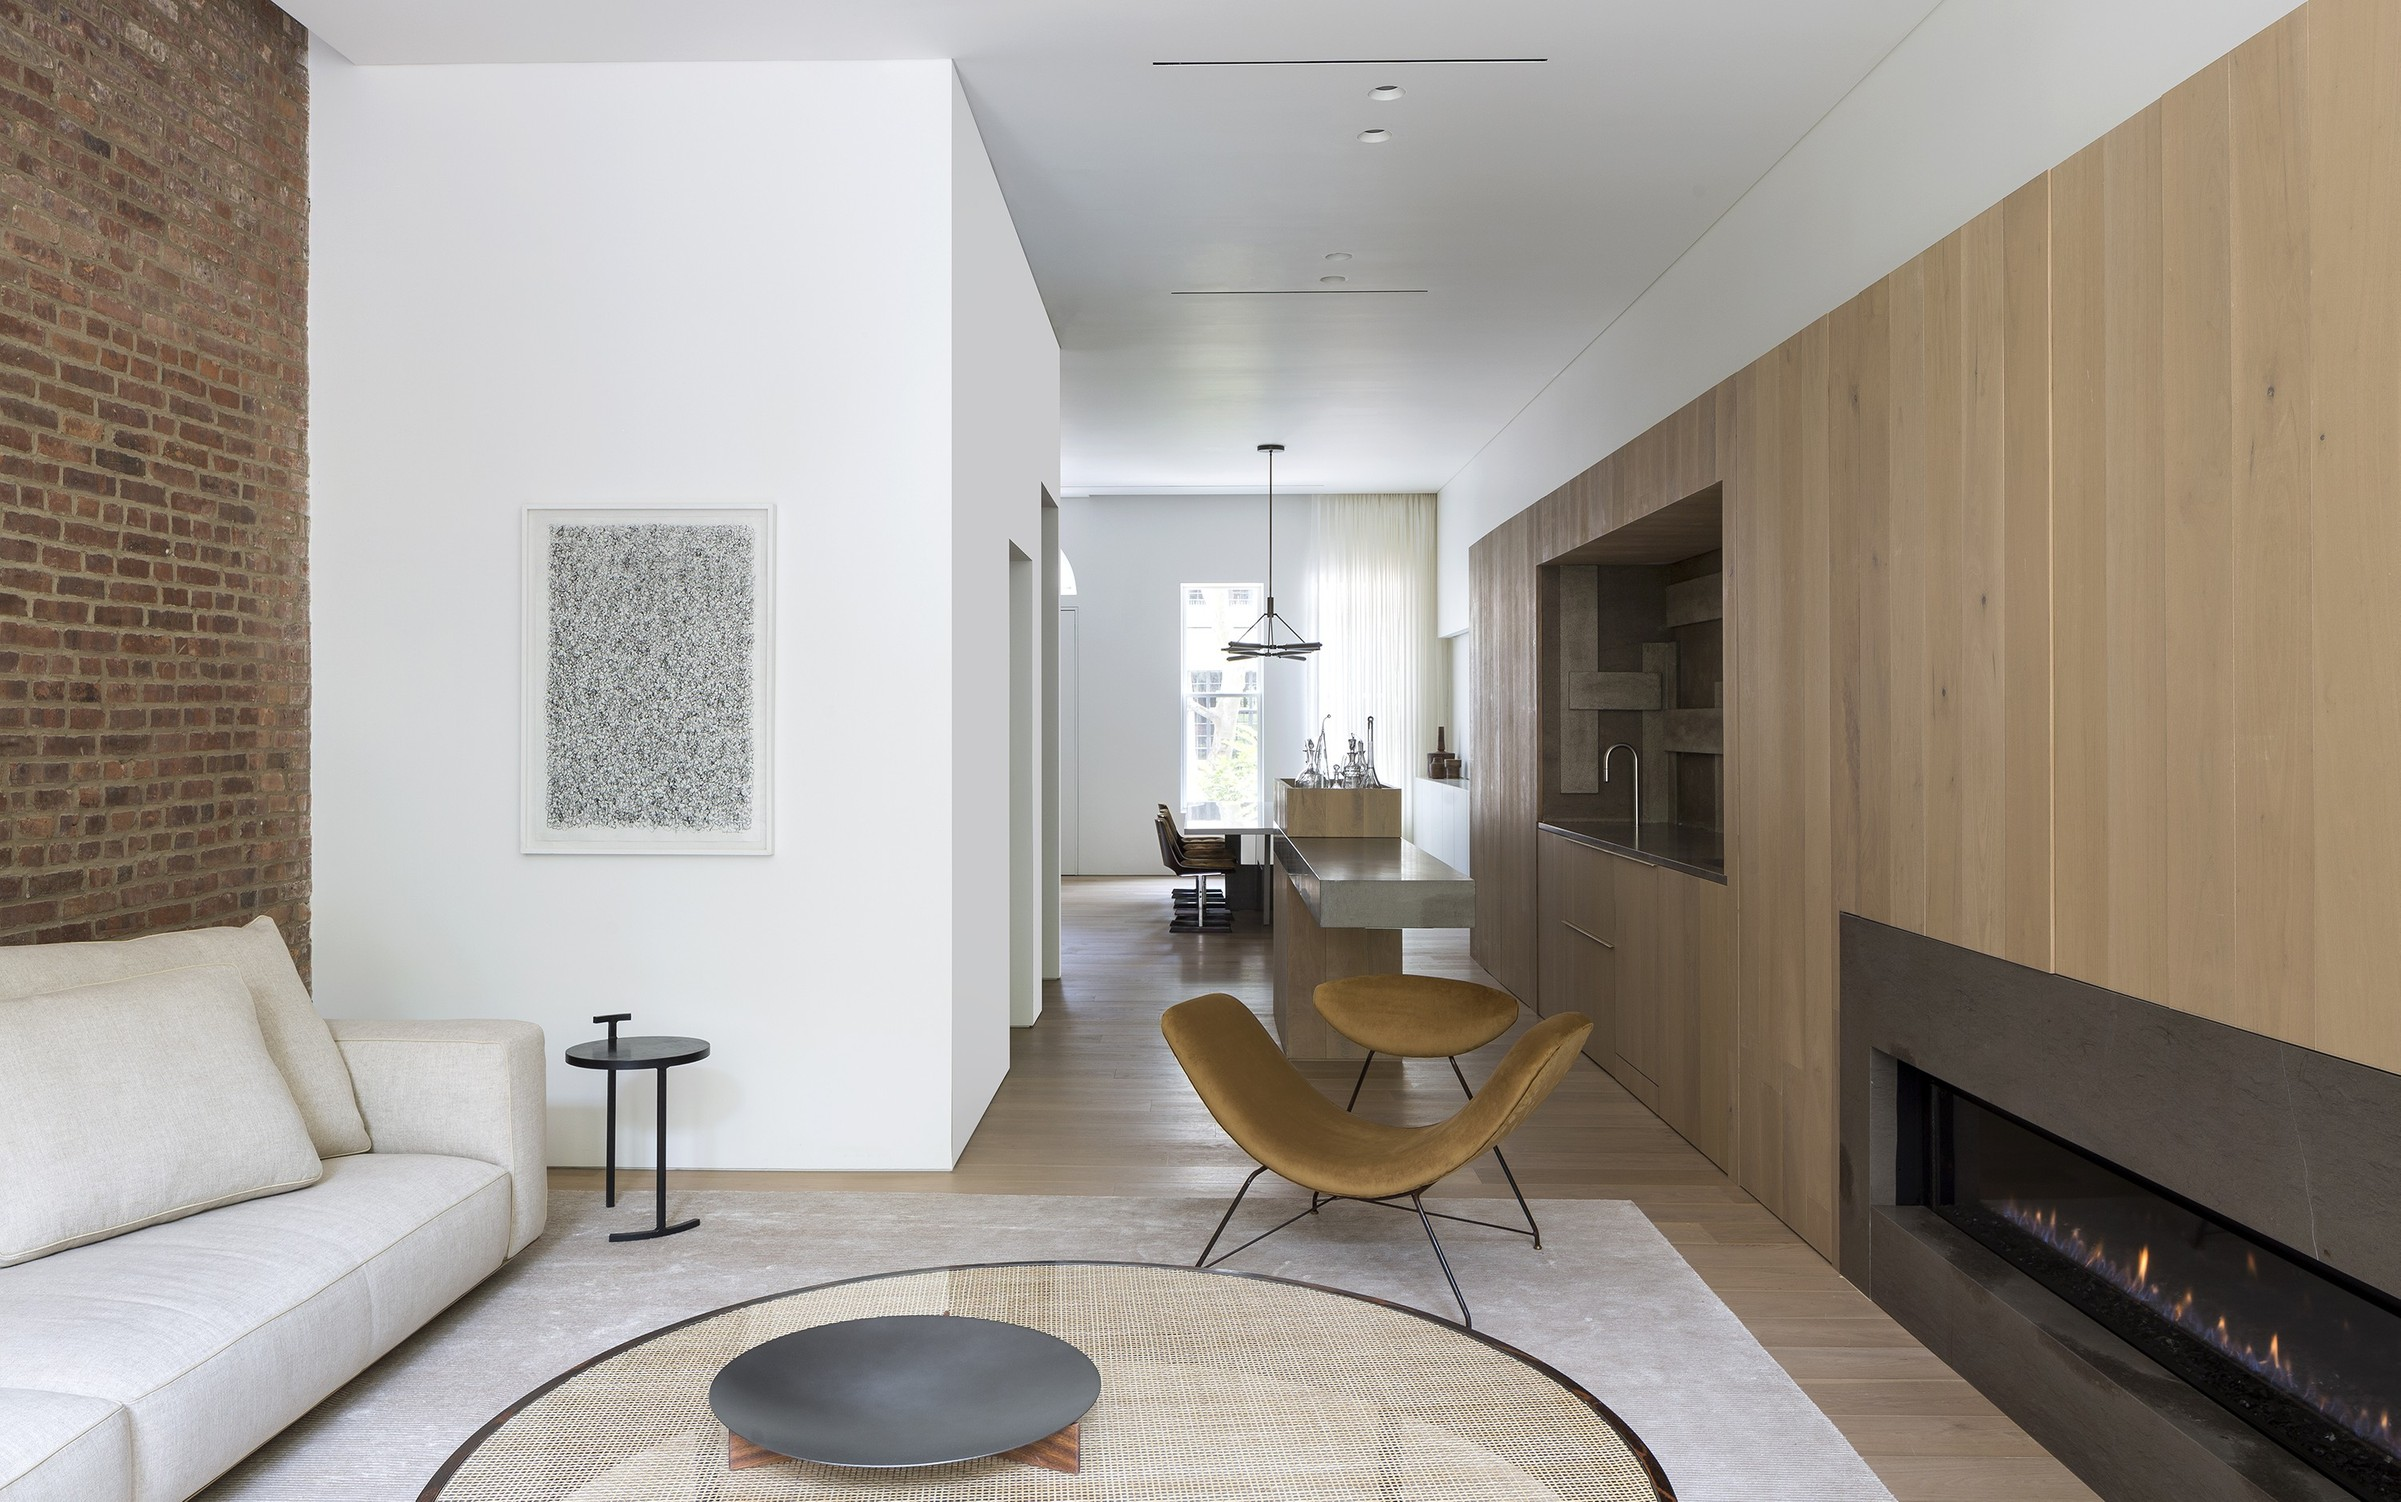 Brownstone House - Projects - Arthur Casas padstyle.com